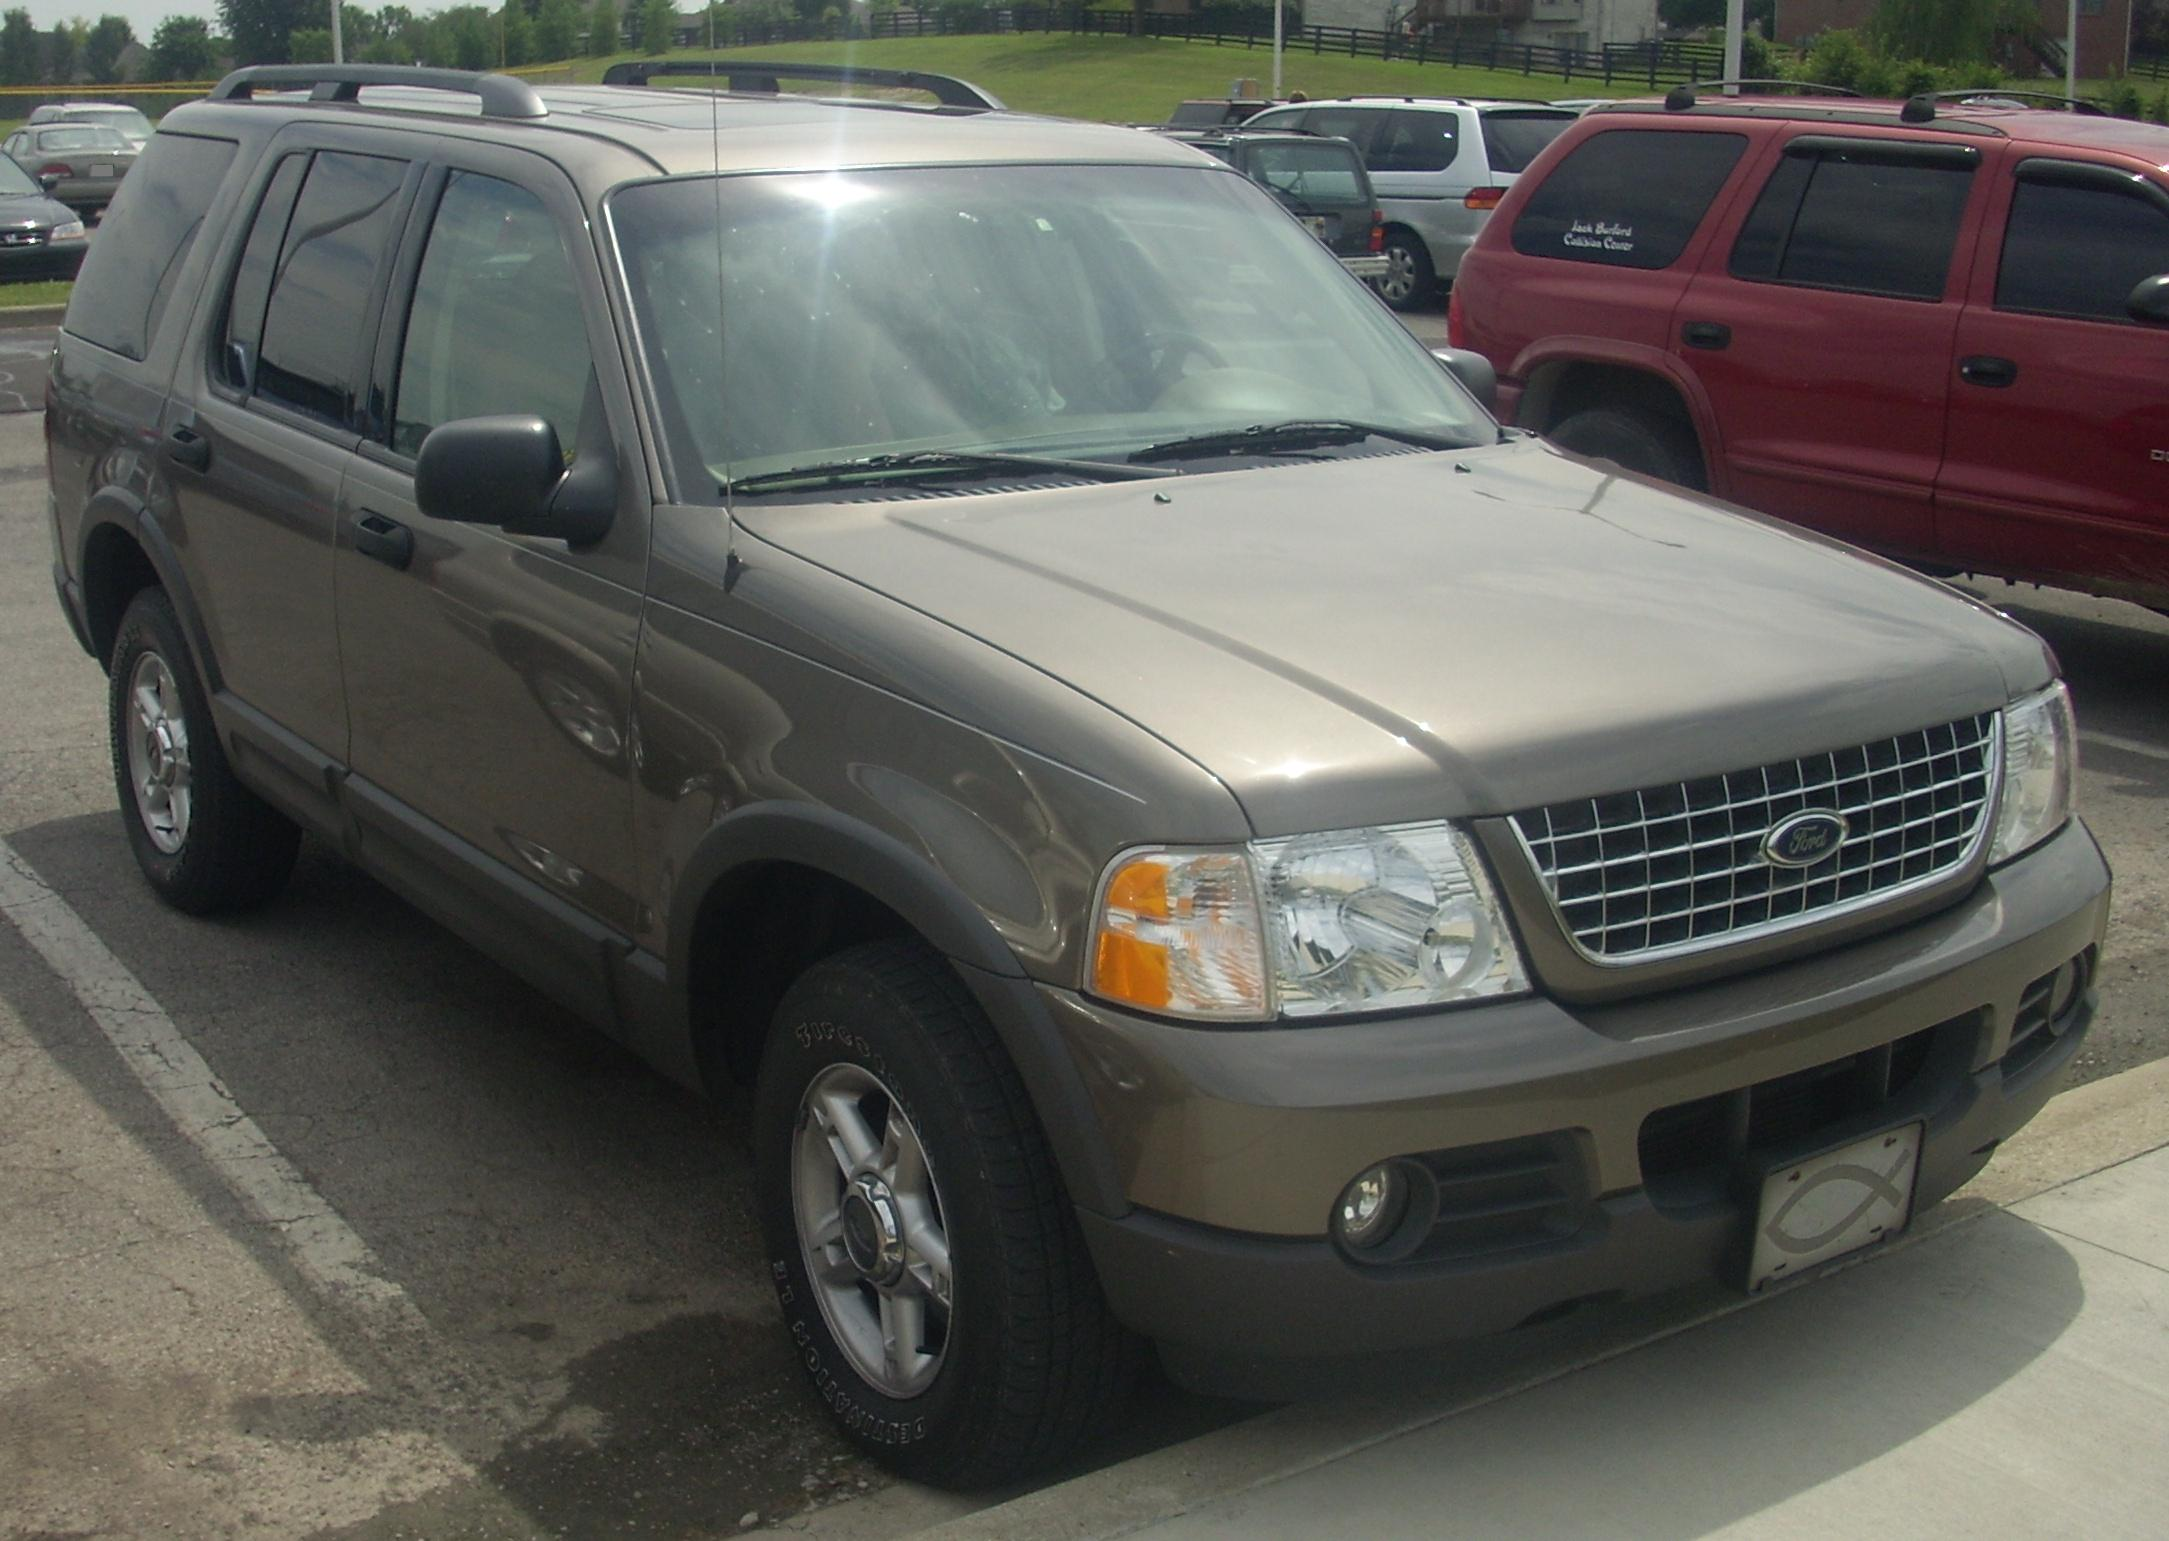 2003 Explorer Ford Rollovers